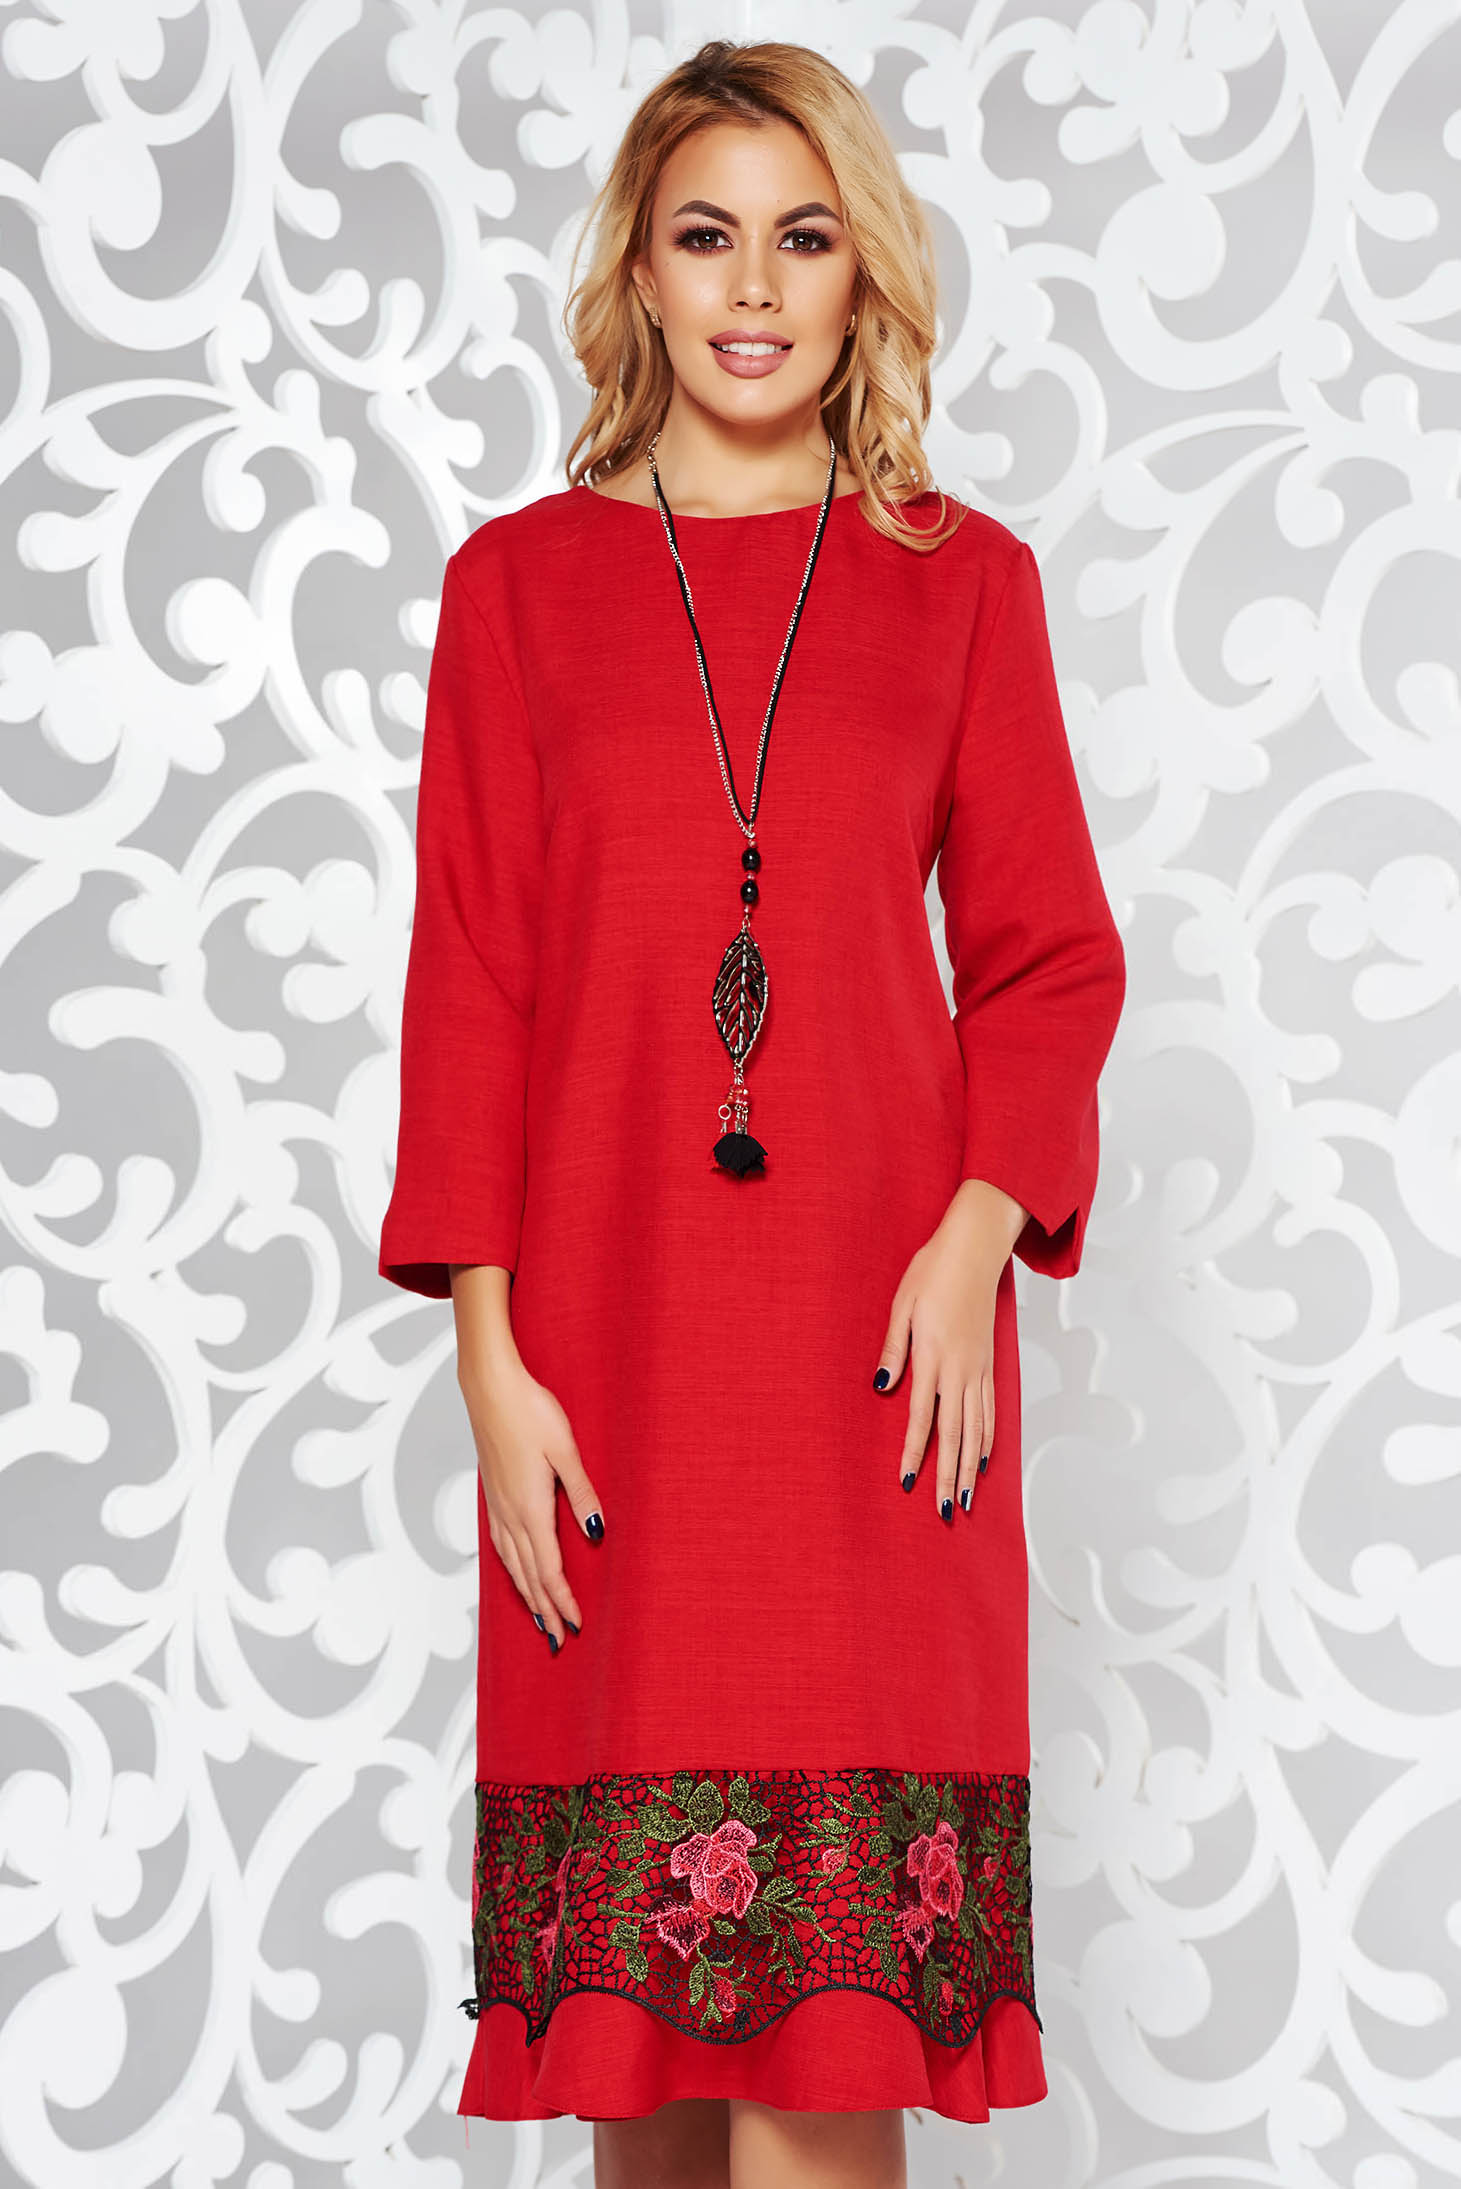 Red dress elegant flared slightly elastic fabric with lace details accessorized with chain